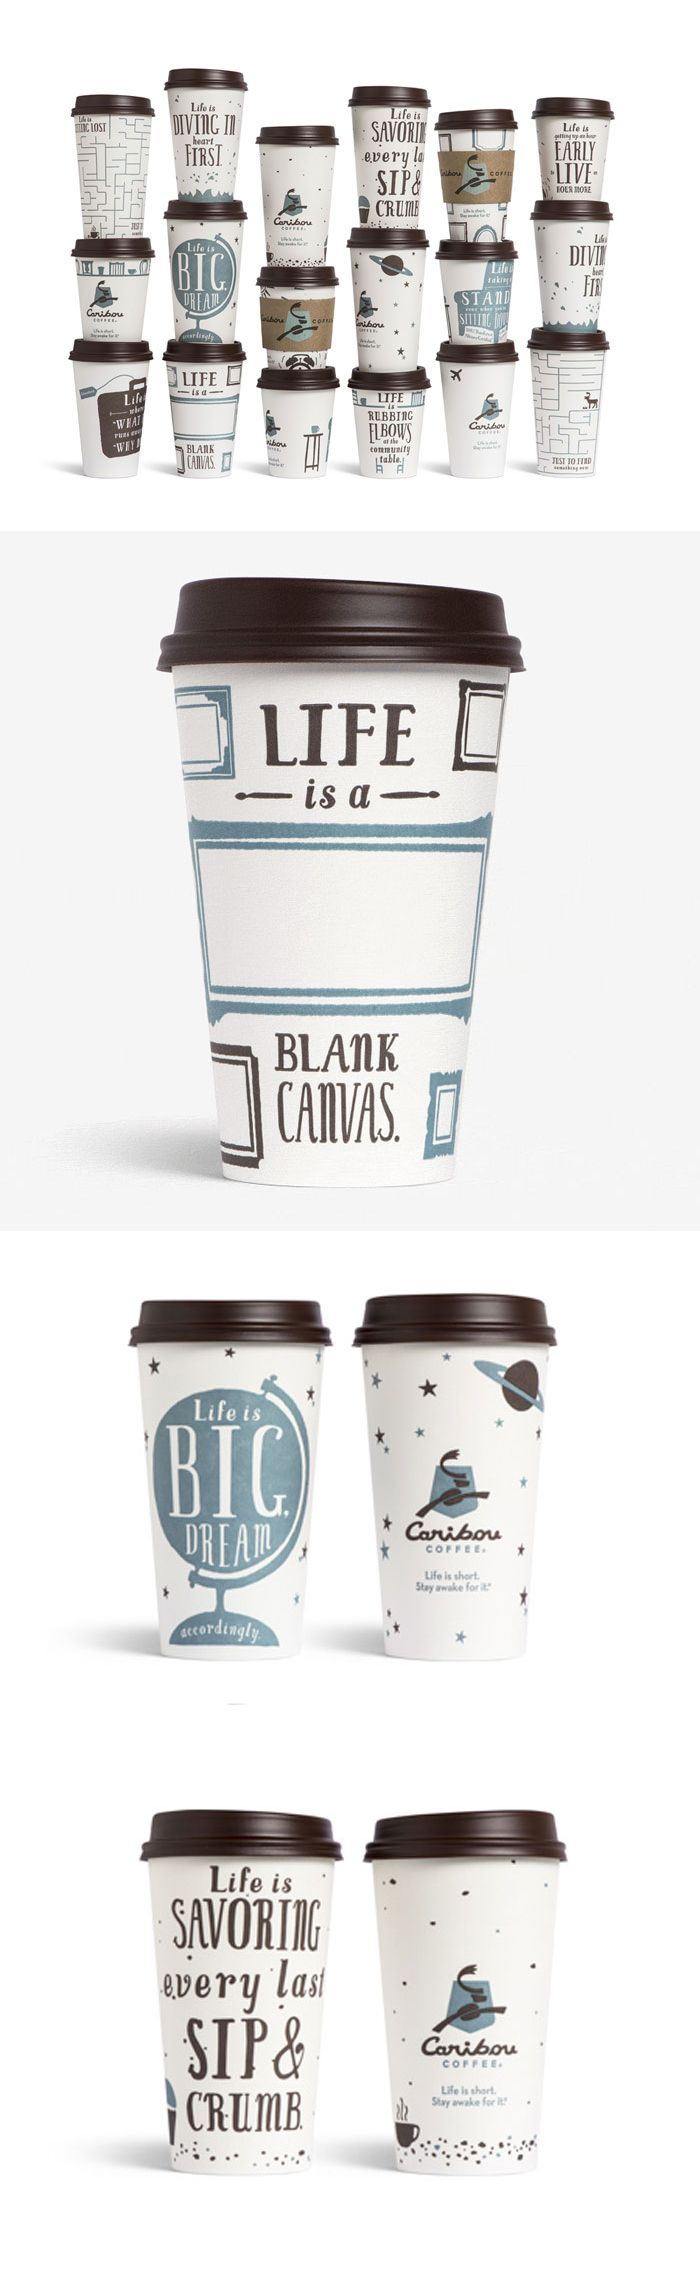 freakin handwritten stuff. Caribou is killin it with the cup designs!